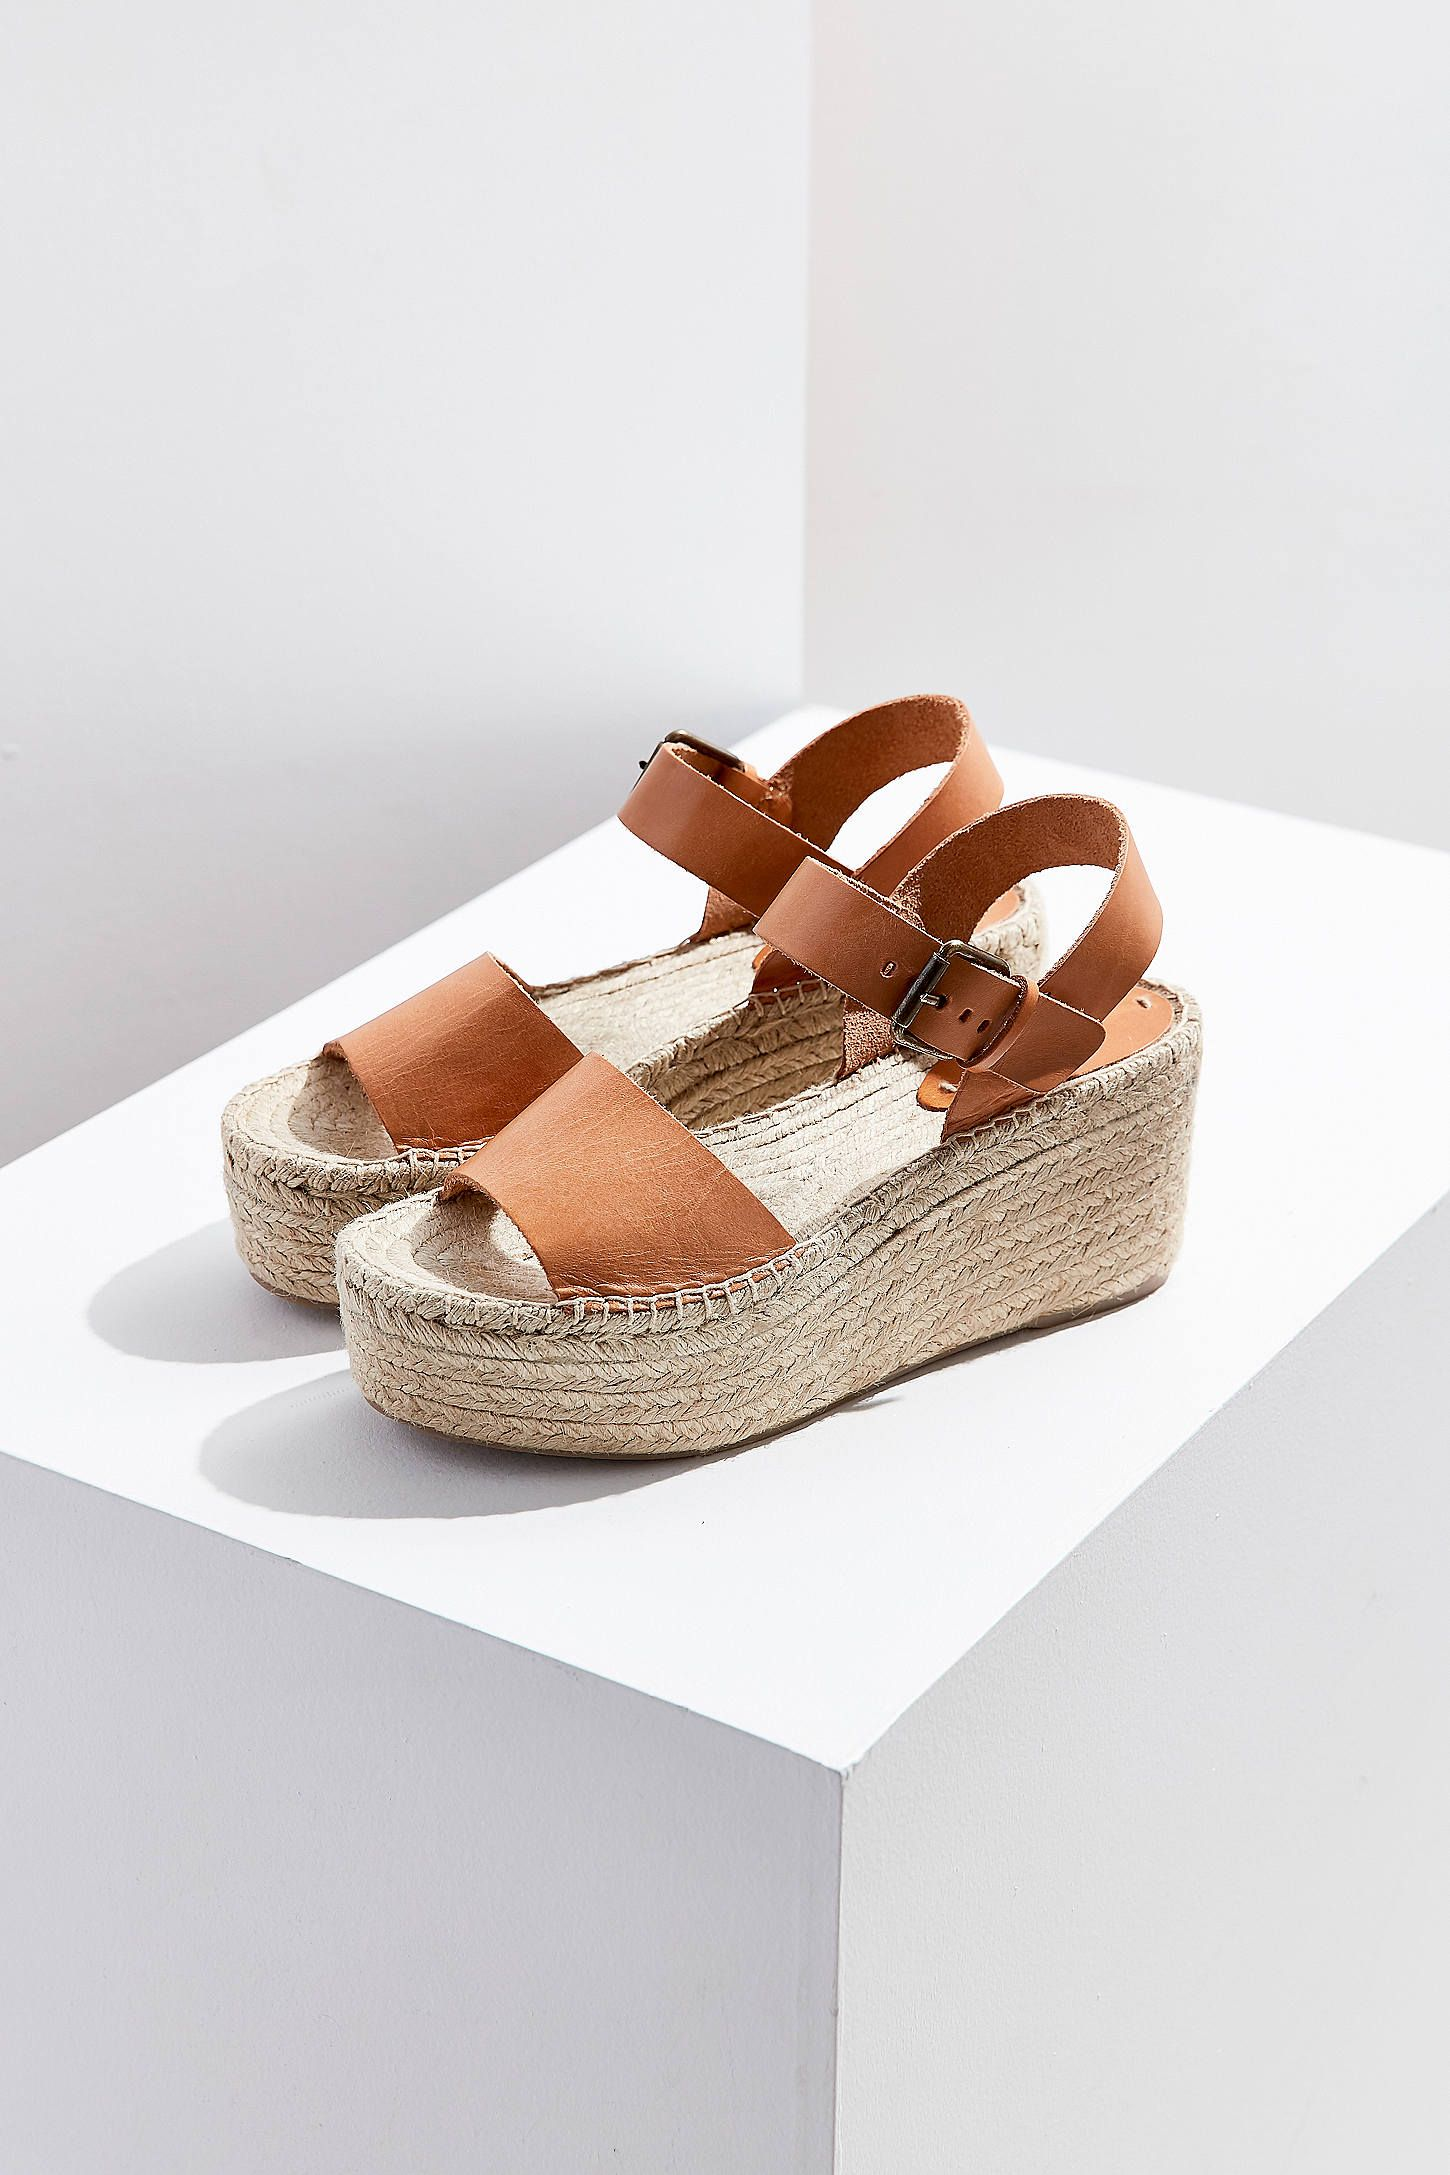 Shop Soludos Minorca High Platform Sandal at Urban Outfitters today. We  carry all the latest styles 85d33324146